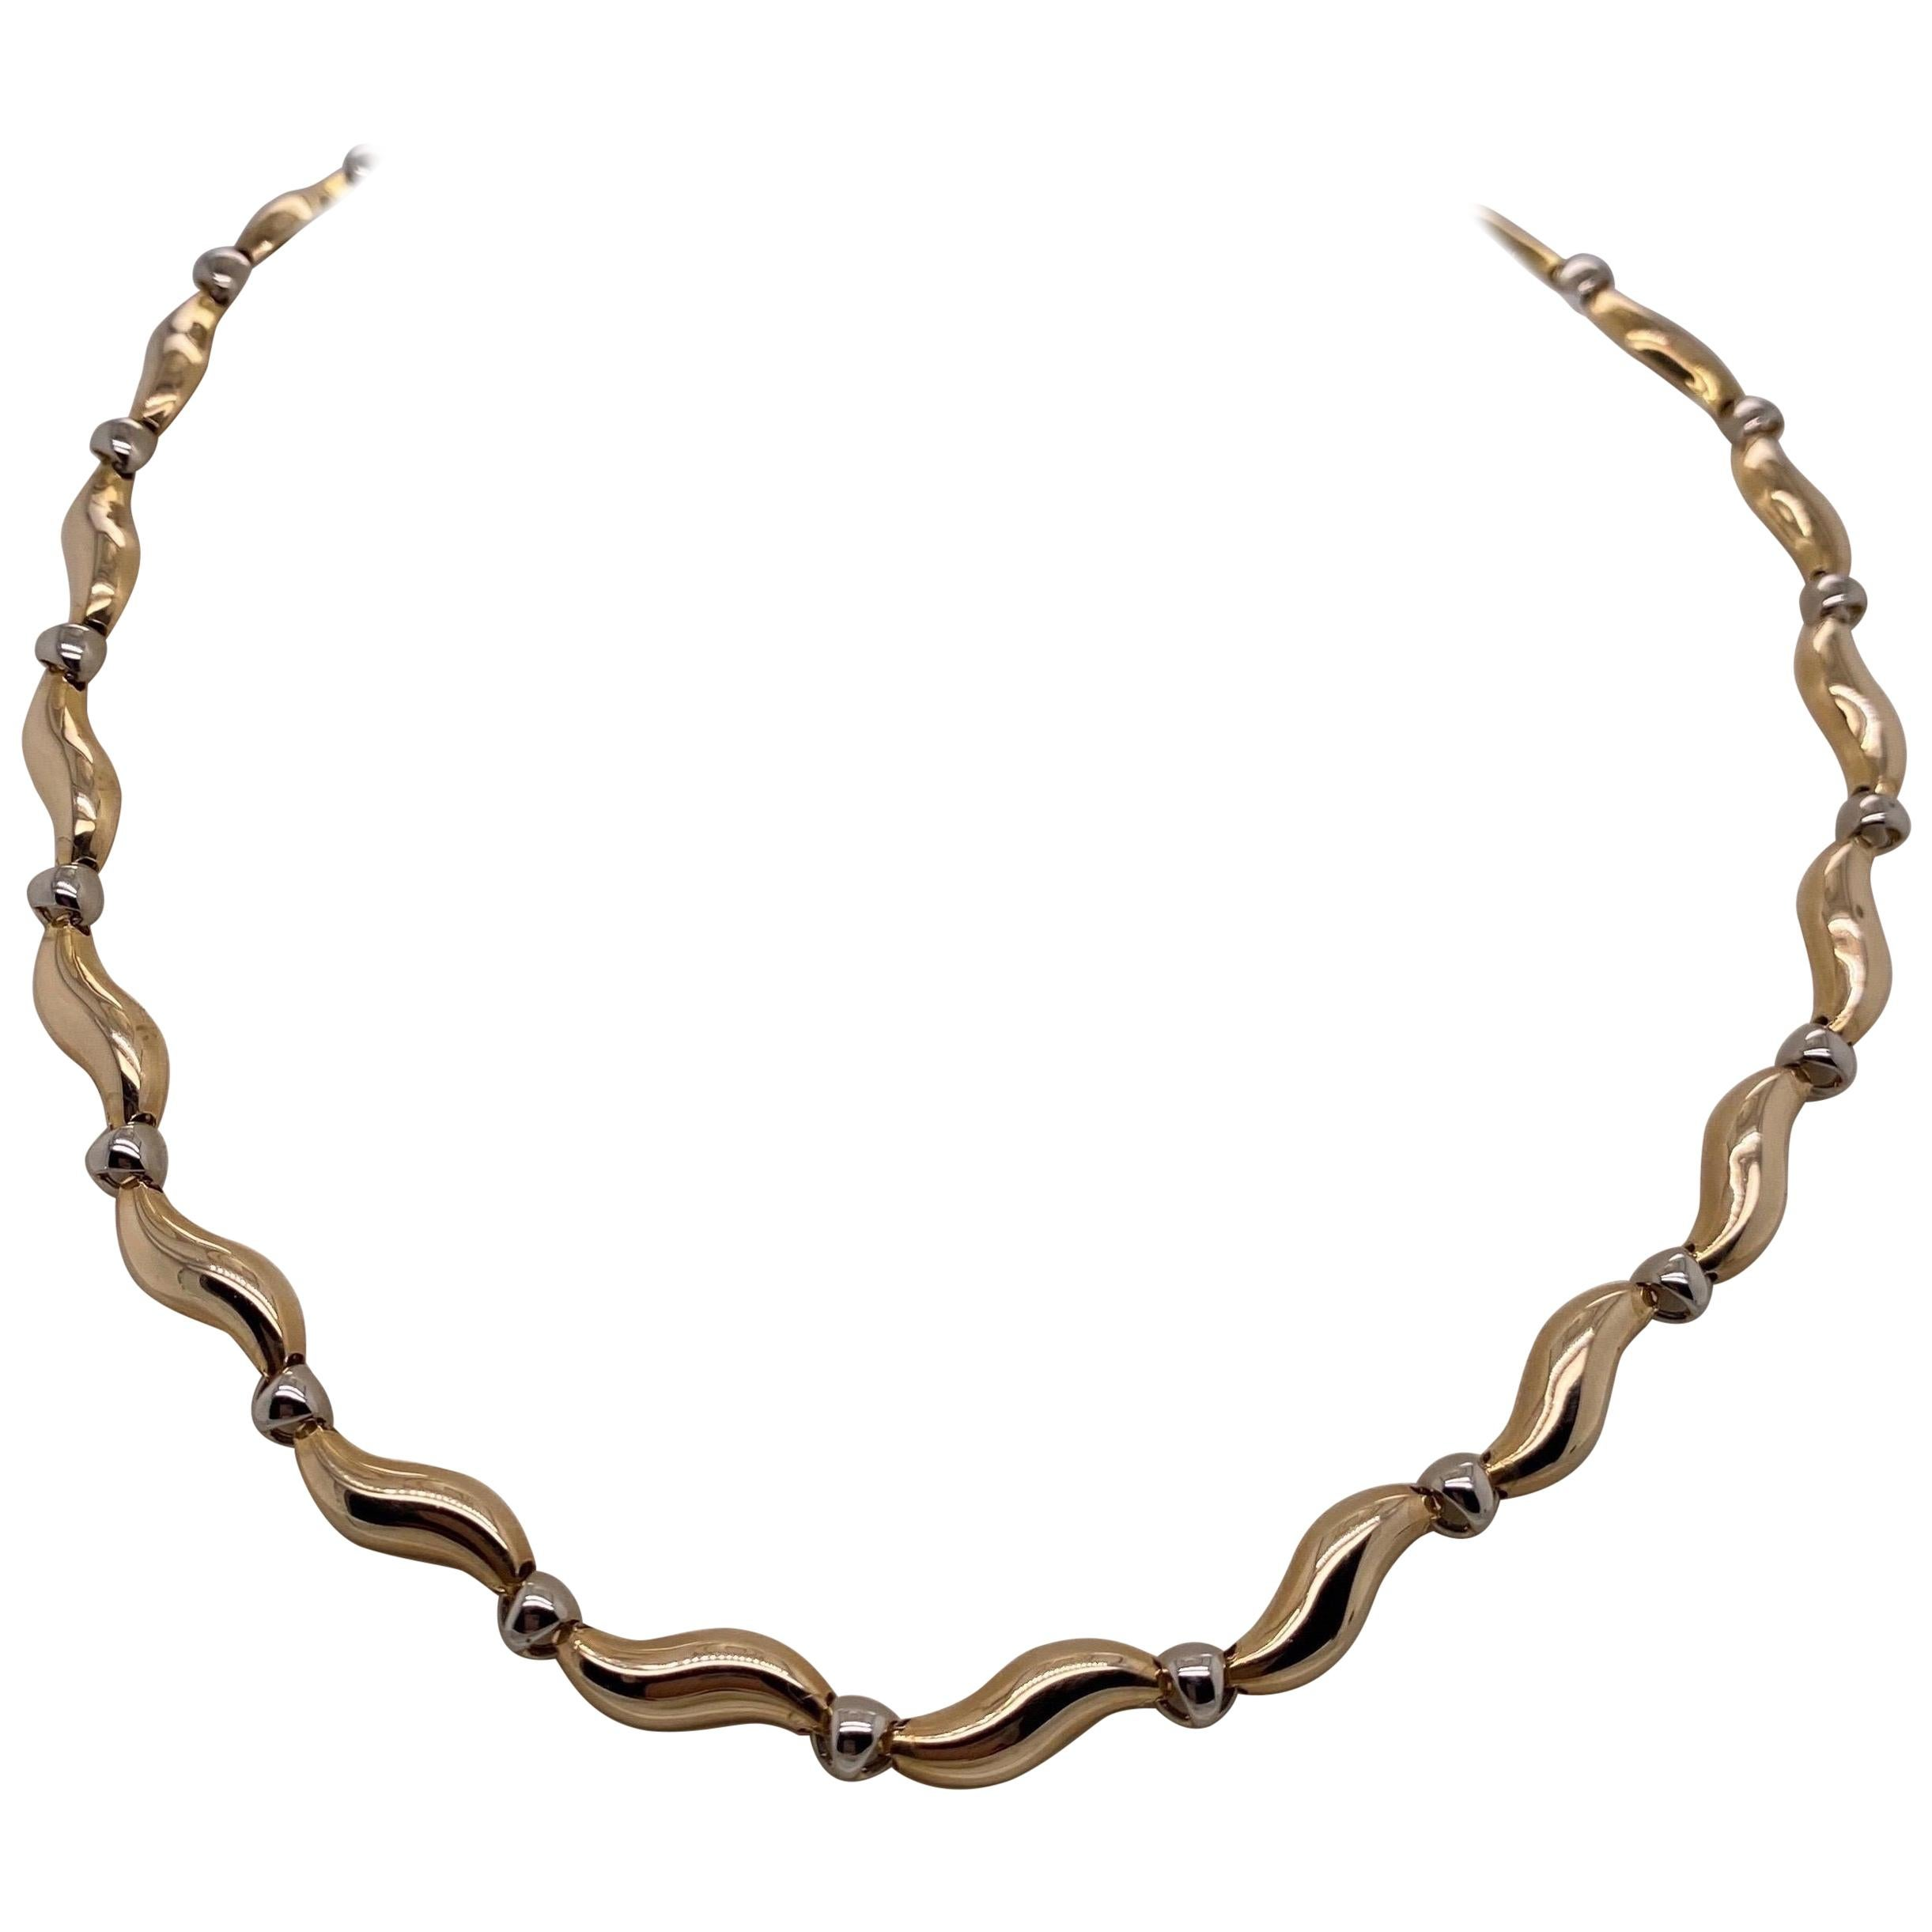 Vintage 1990s 14 Karat Yellow and White Gold S-Link Necklace